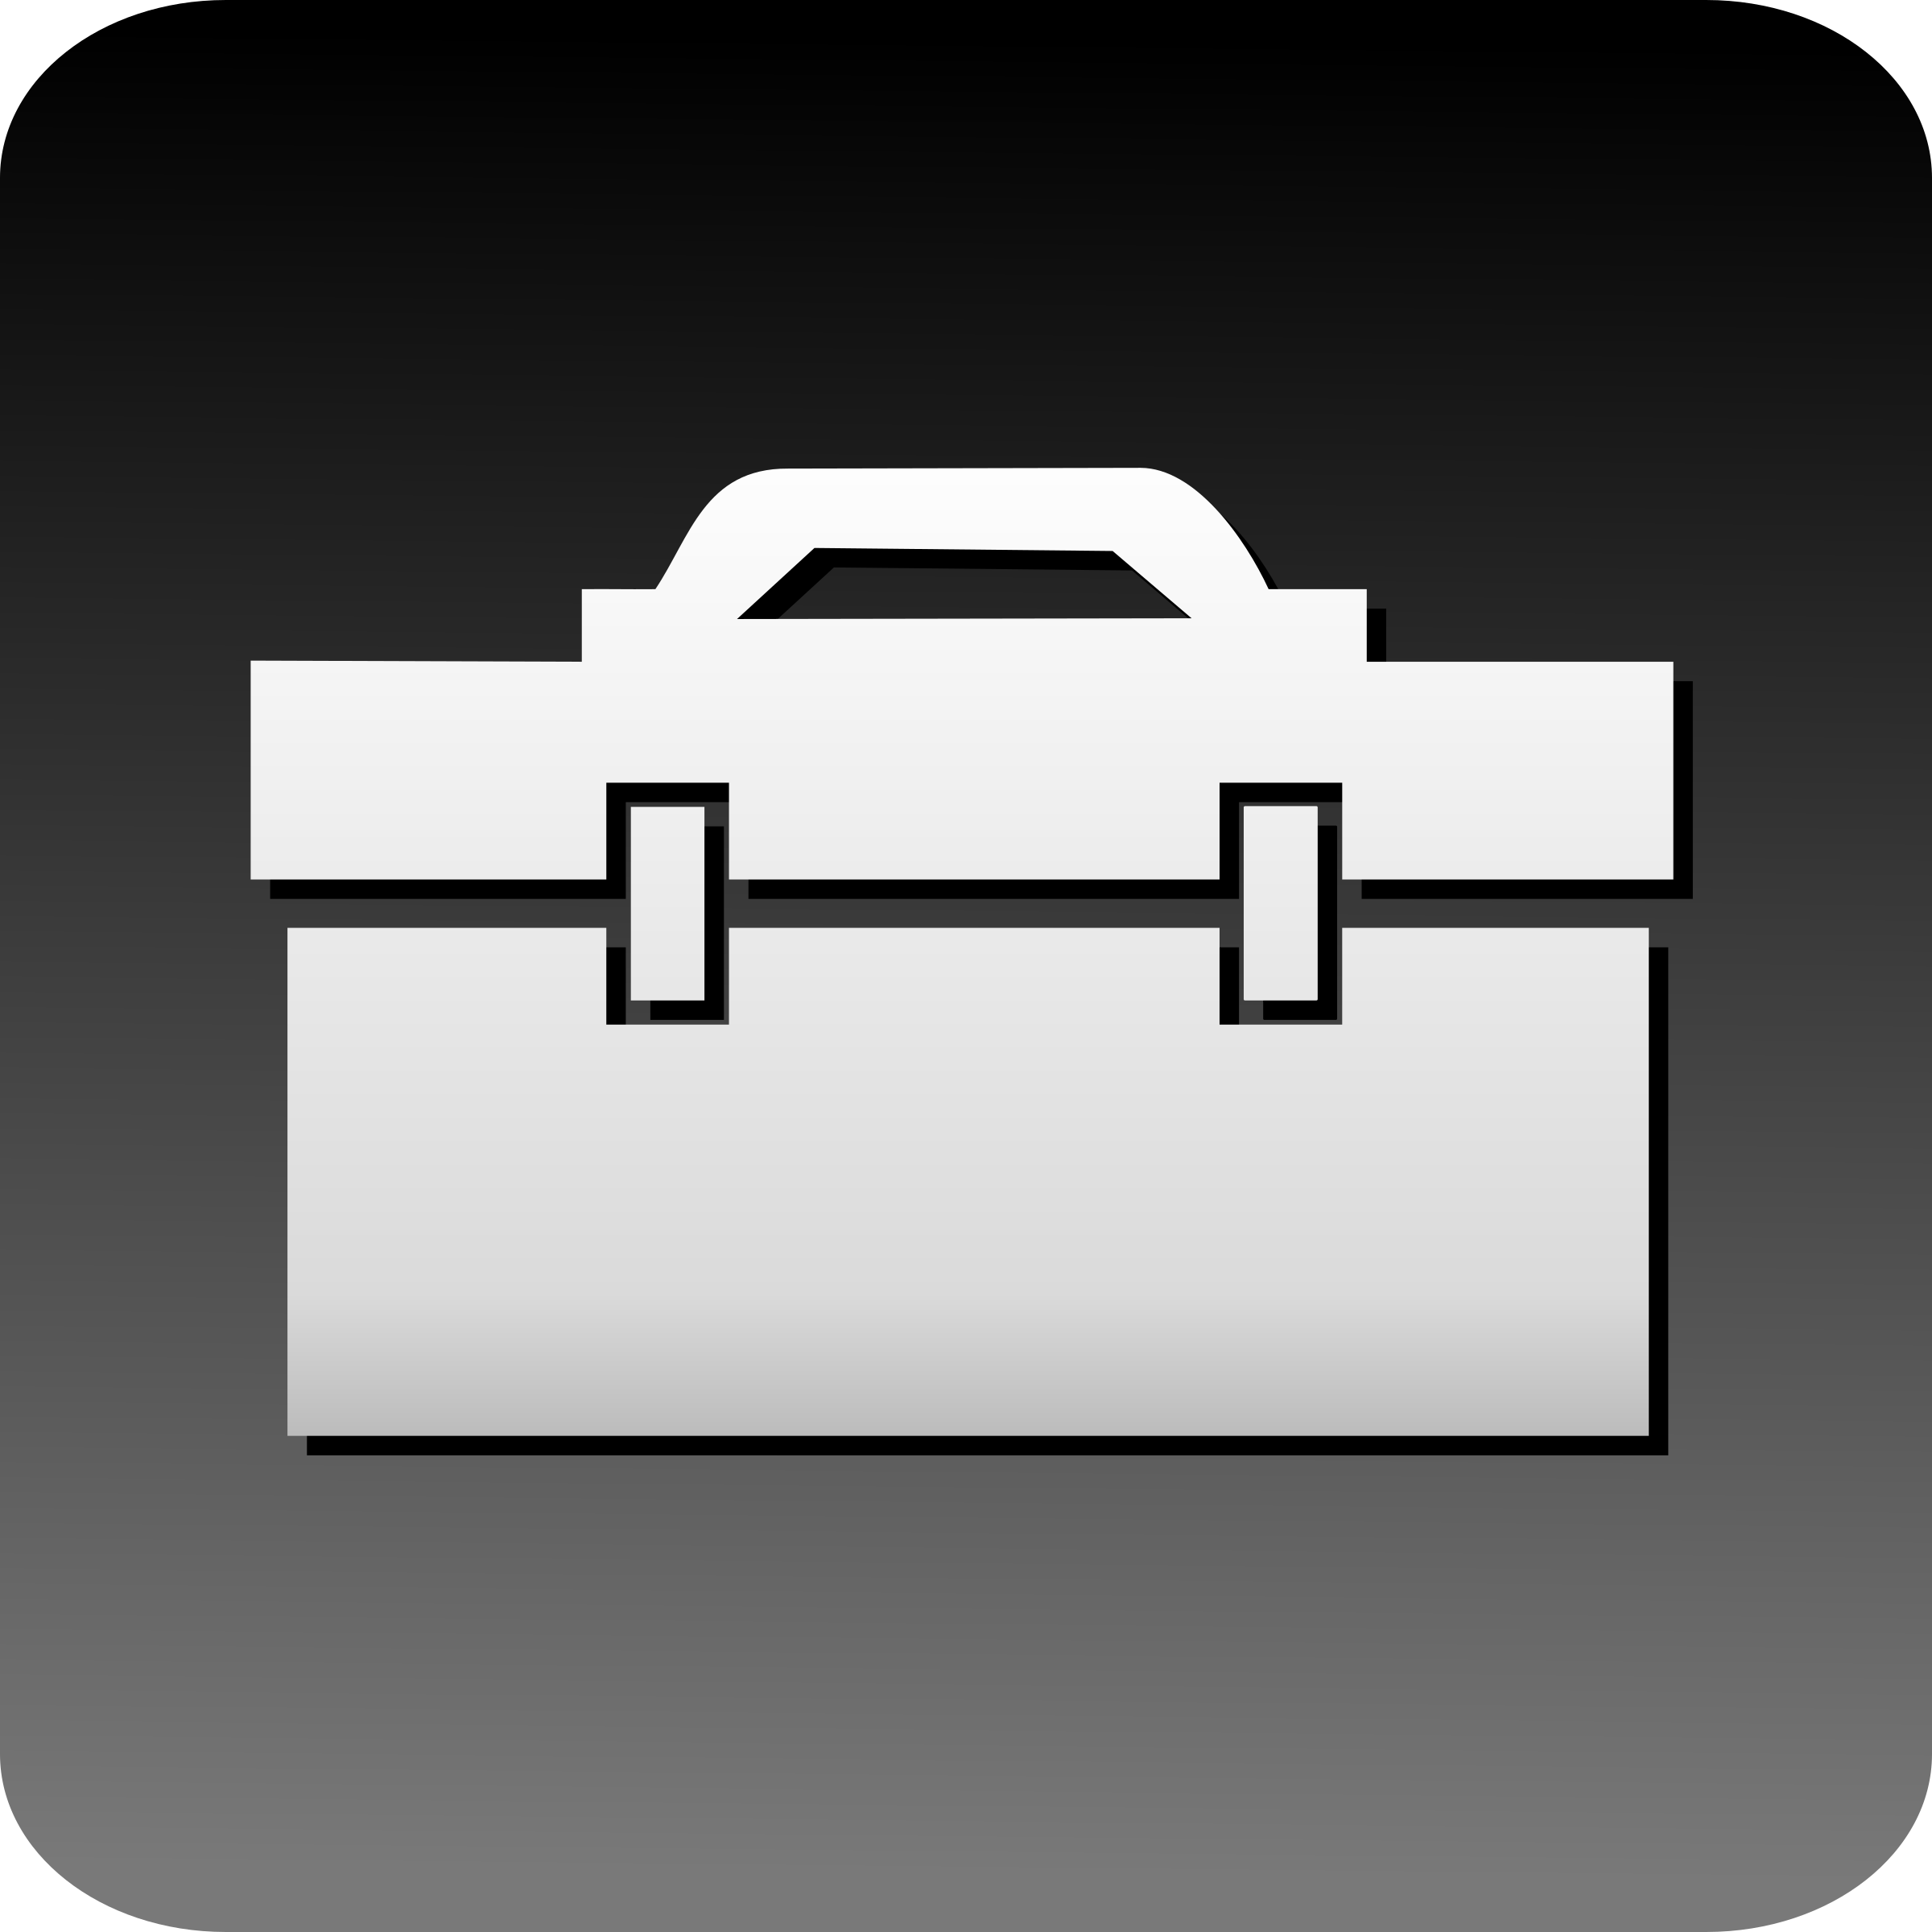 Toolbox icon by ben